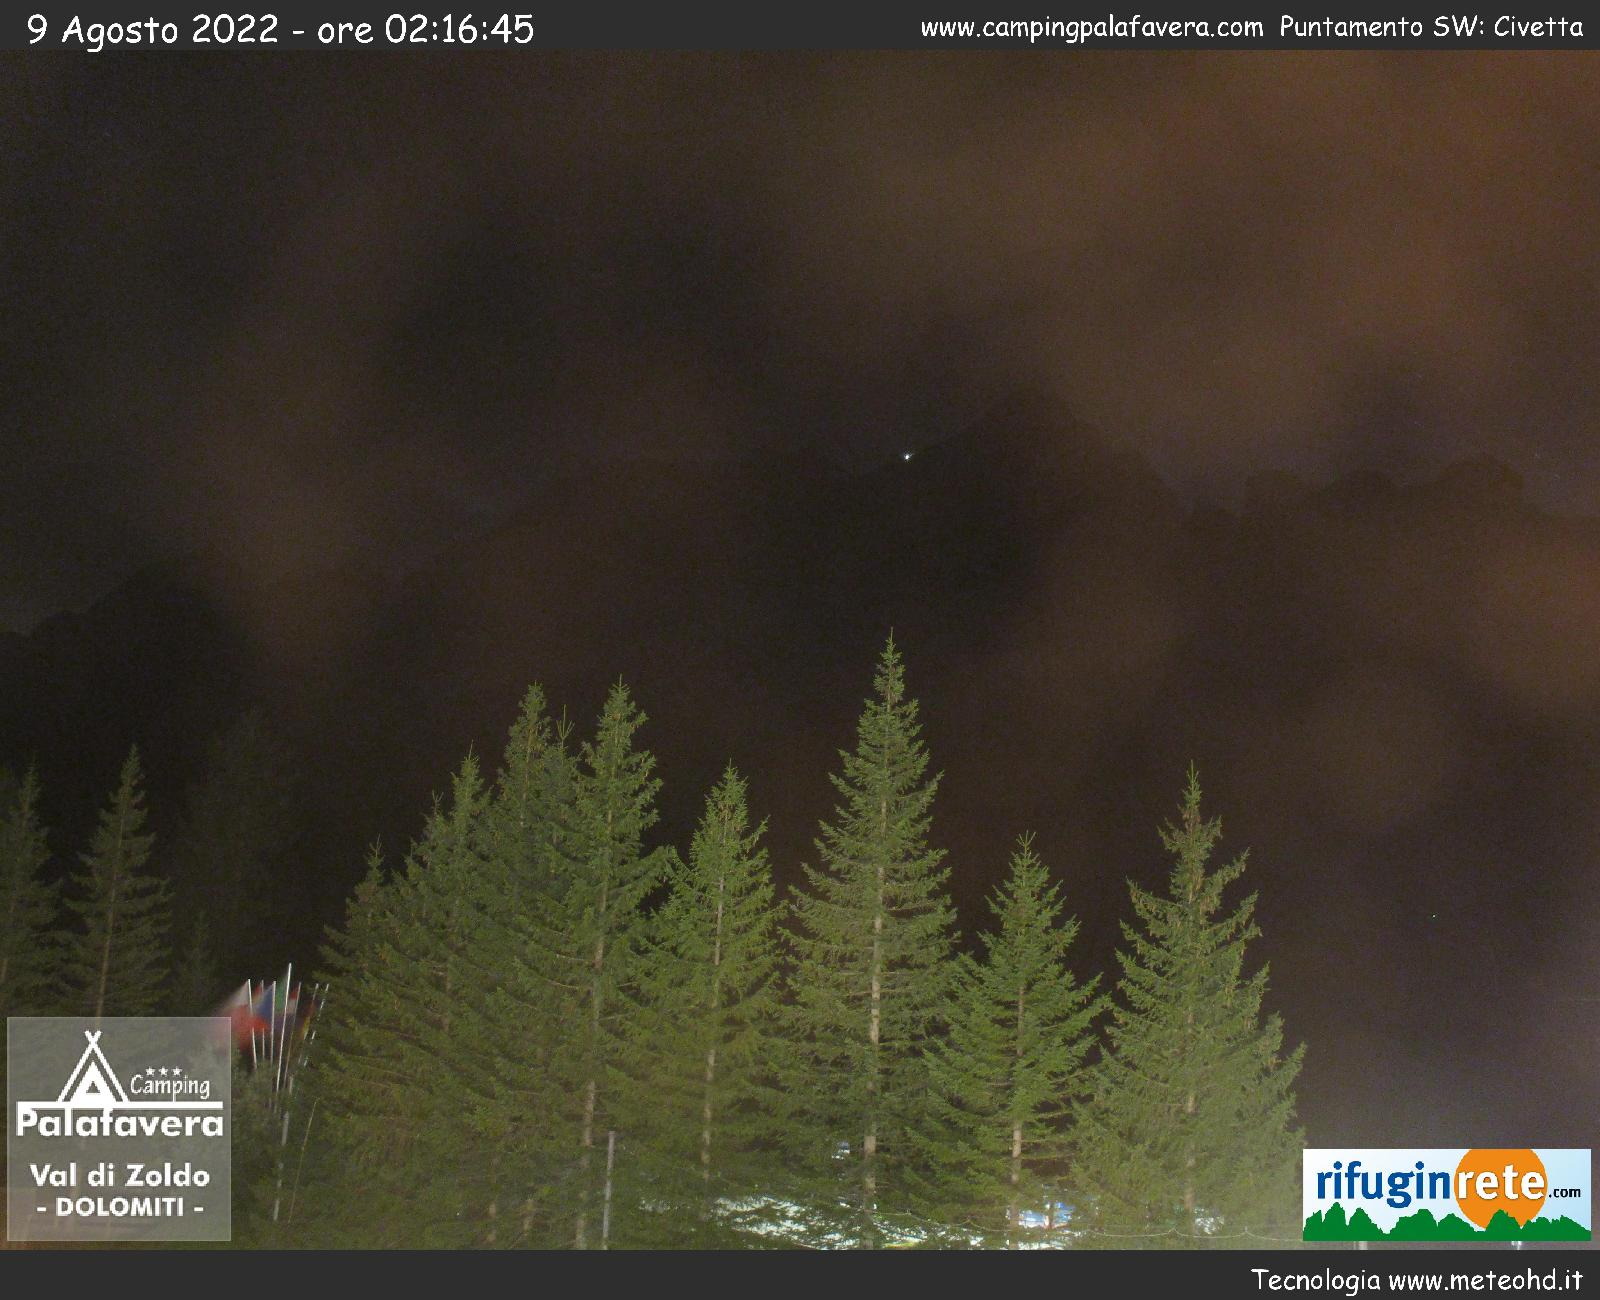 Webcam Camping Palafavera